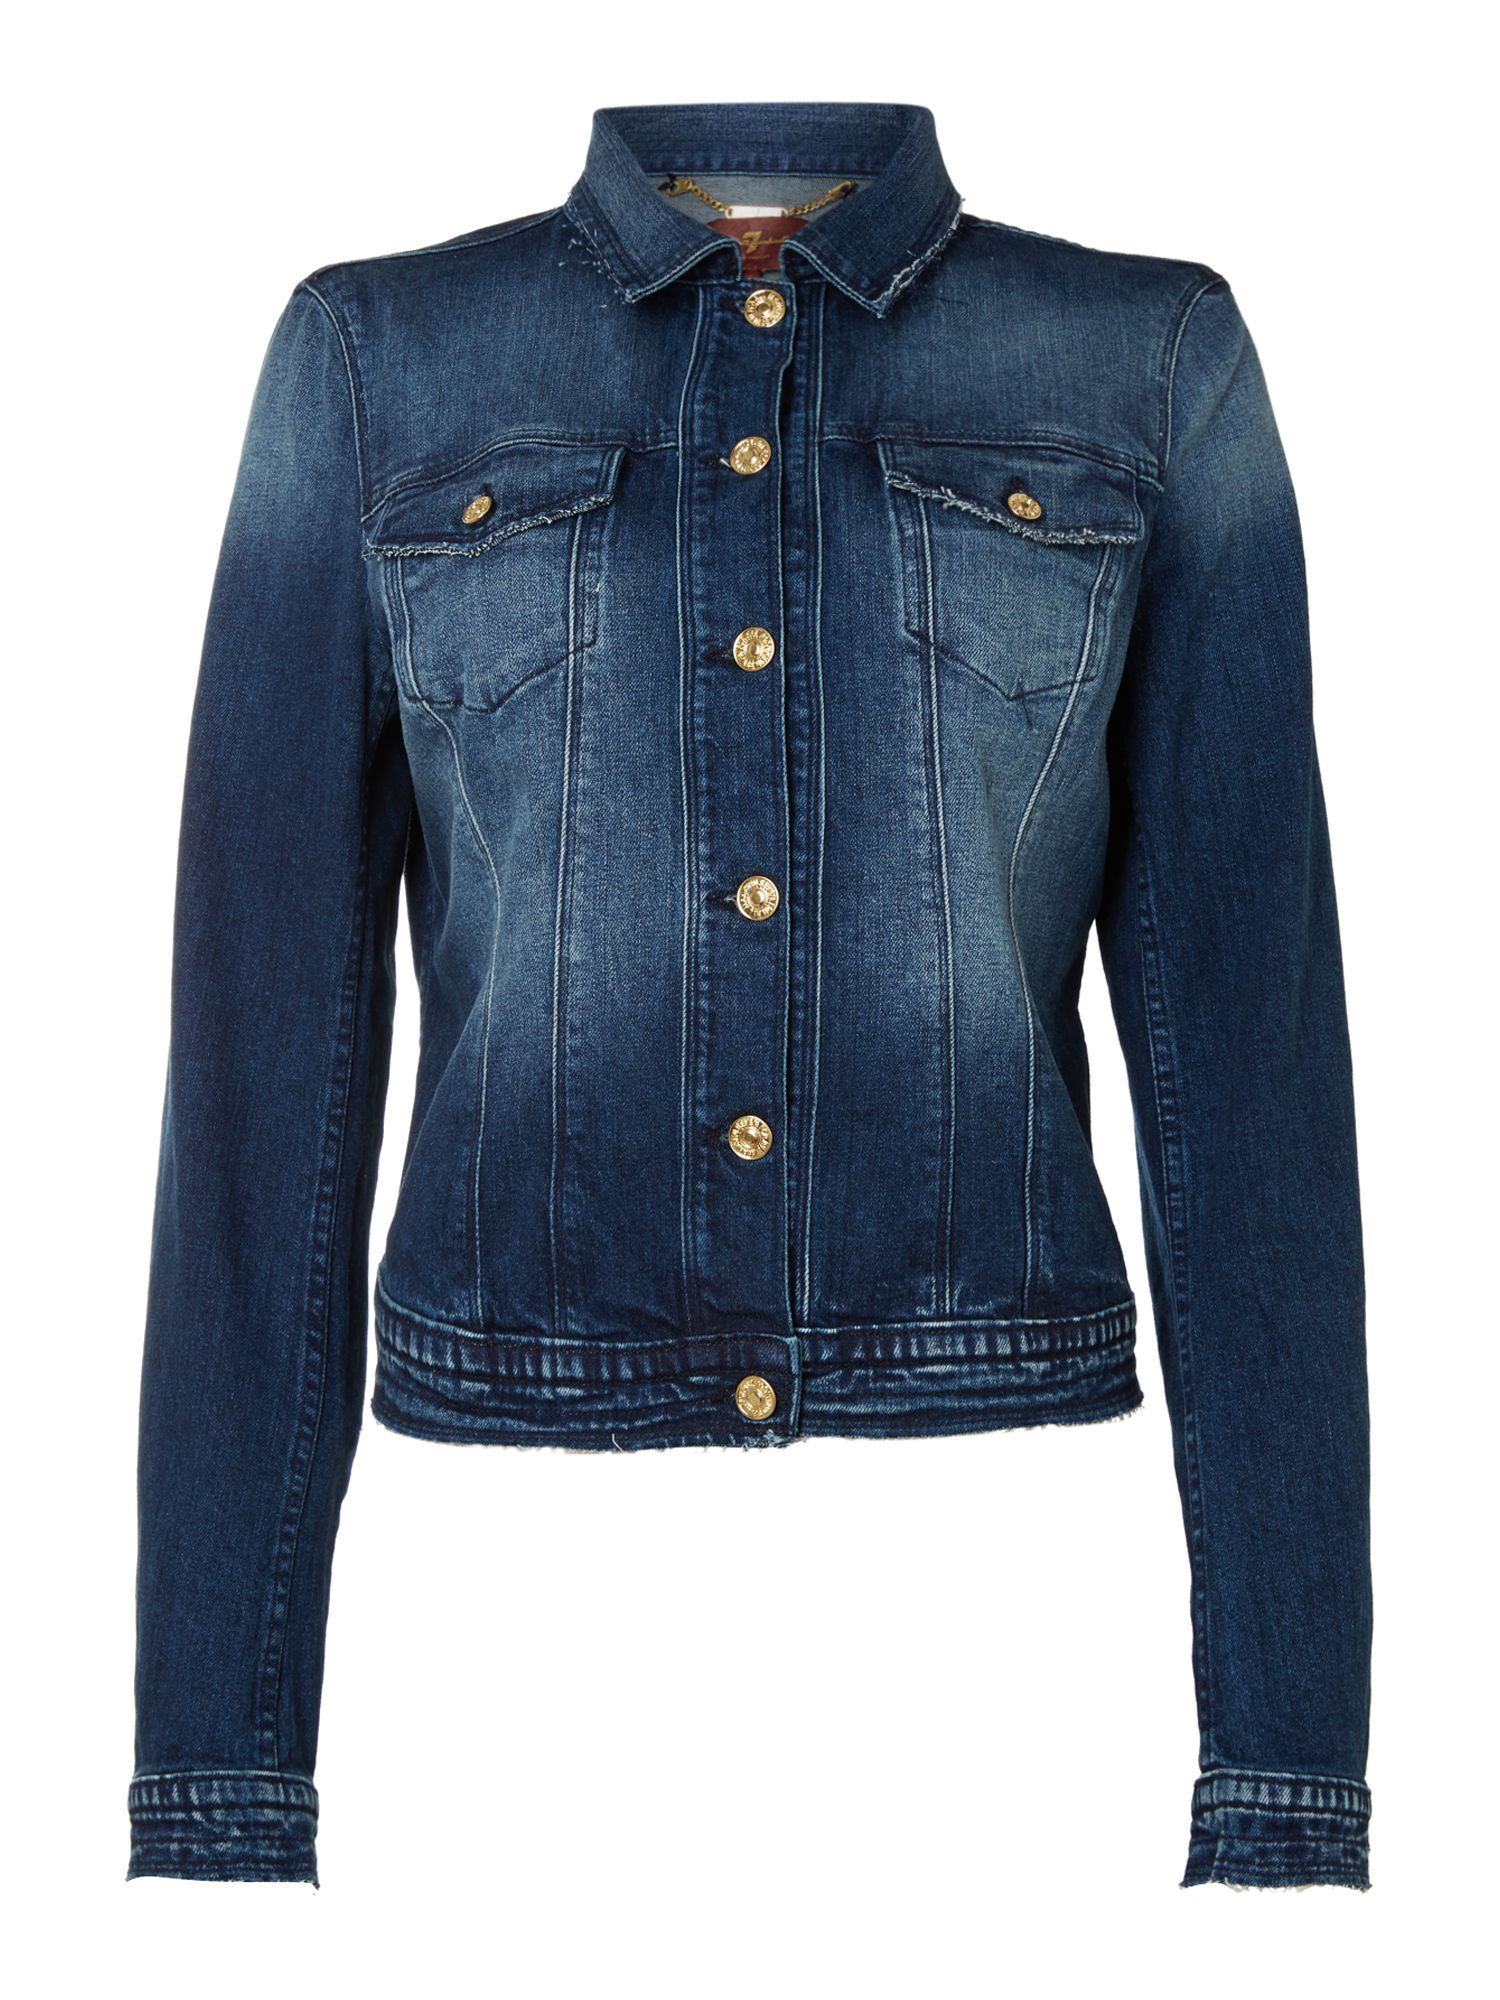 Classic denim trucker jacket in cosmic blue